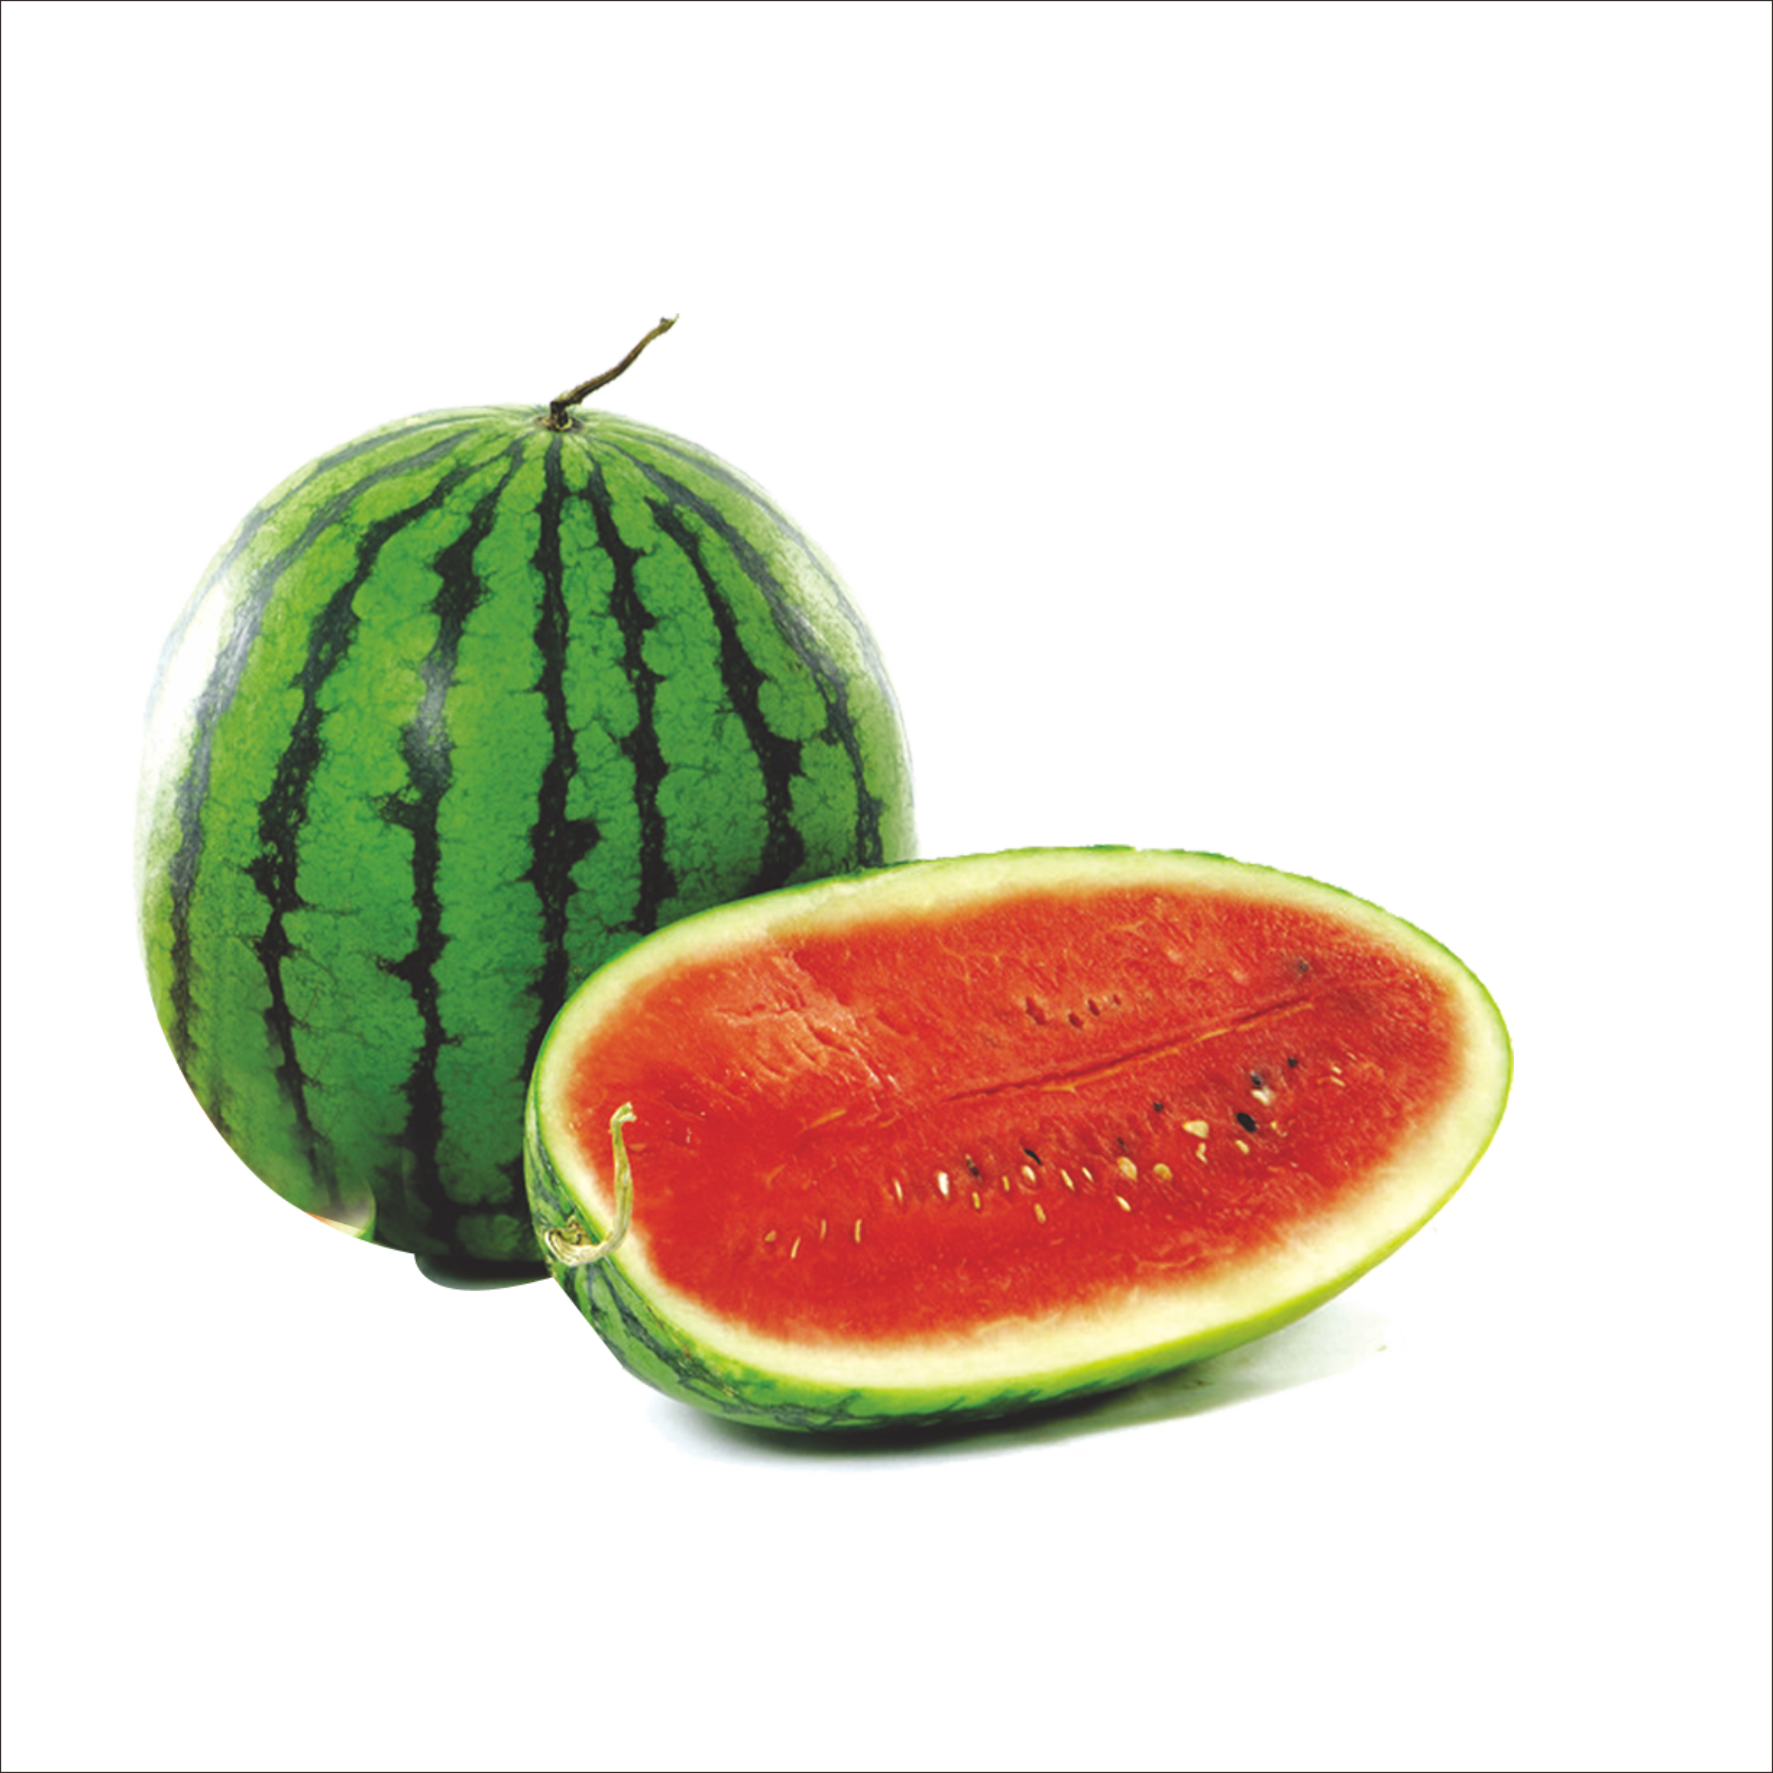 Watermelon clipart transparent background banner royalty free library Watermelon PNG Images Transparent Free Download | PNGMart.com banner royalty free library